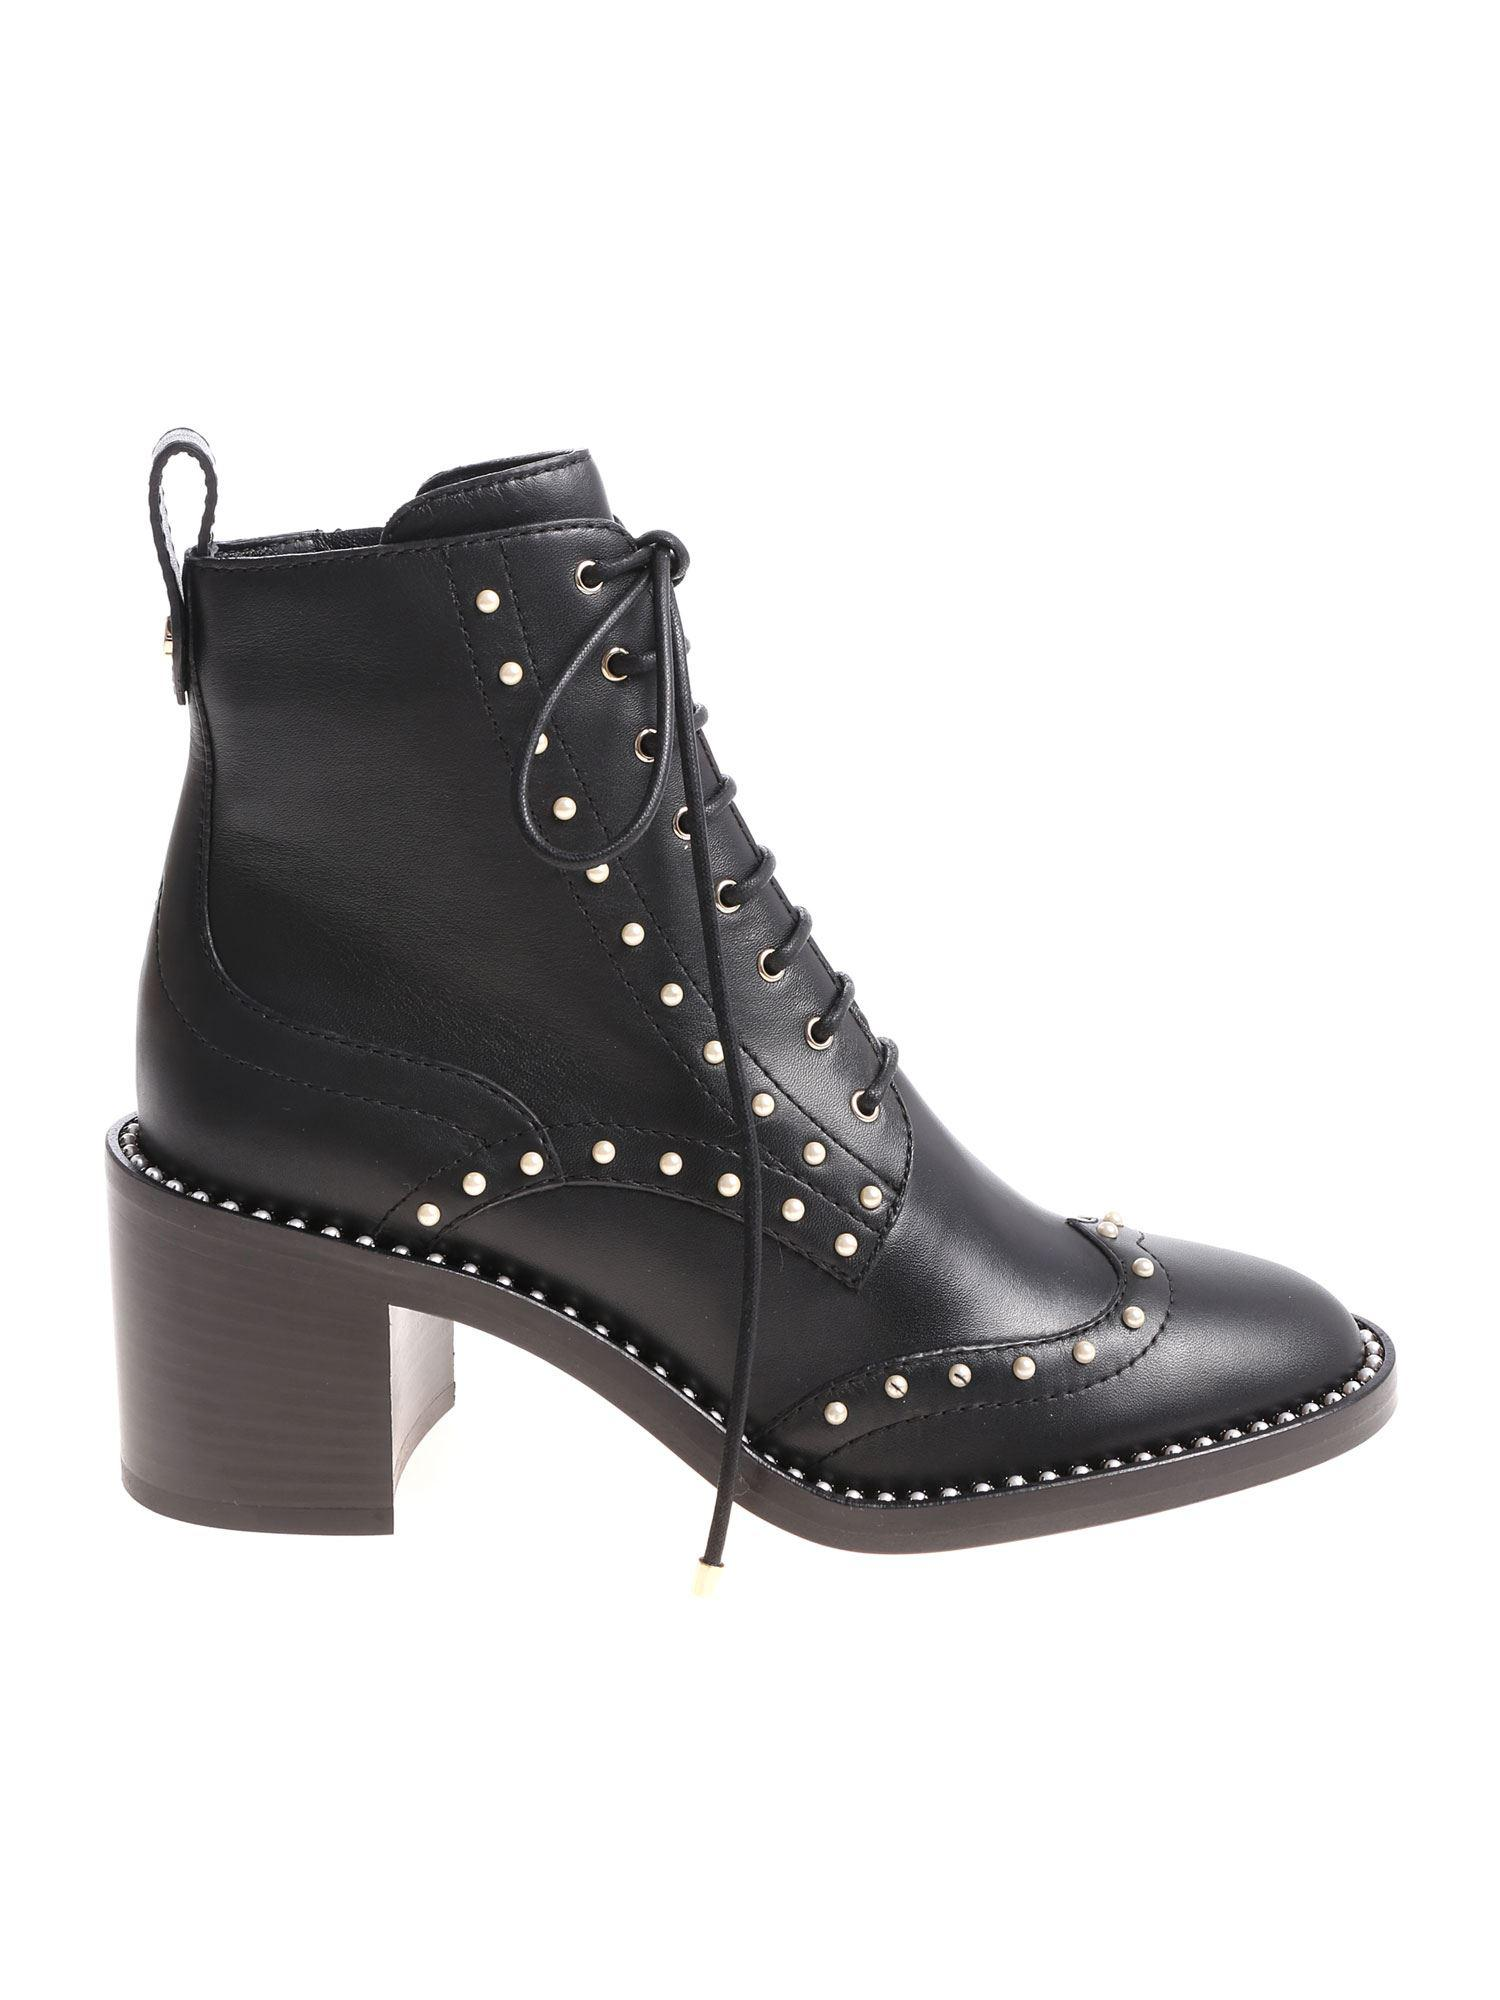 e563e5bde0f5 Lyst - Jimmy Choo Black Hanah Ankle Boots With Pearls in Black ...